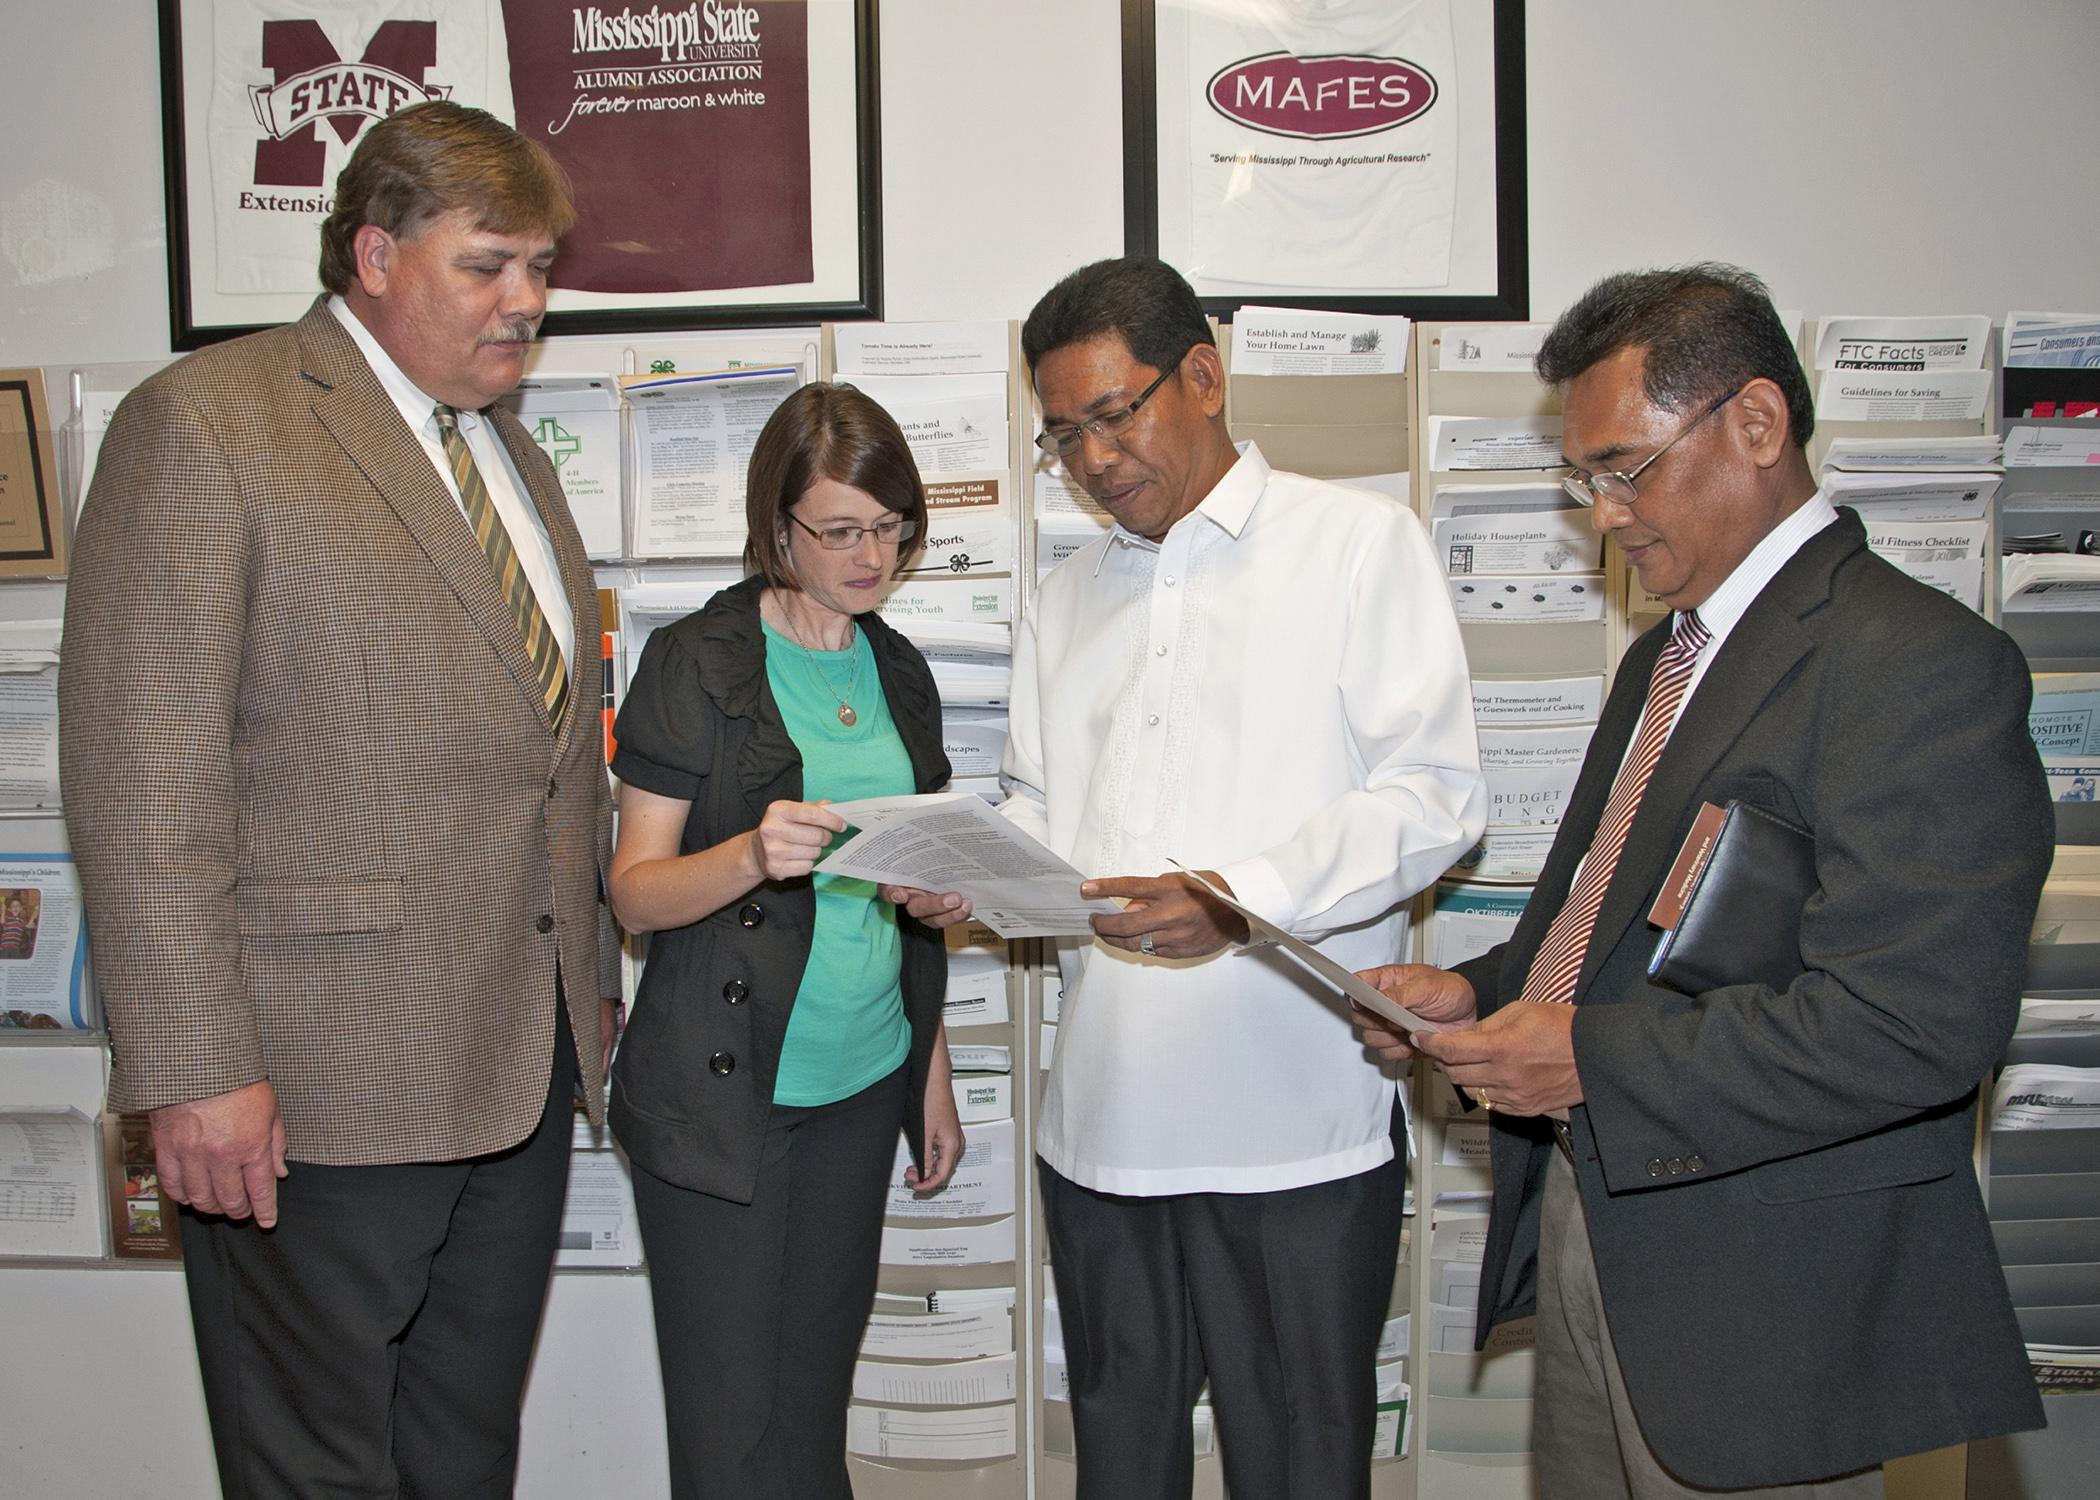 Mississippi State University Extension Service Director Gary Jackson and Oktibbeha County Extension Coordinator Julie White review some of the many publications available through Extension with Edilberto DeLuna and Asterio Saliot, members of an agricultural delegation from the Philippines, visiting the county office on May 28, 2013. (Photo by MSU Ag Communications/Kat Lawrence)